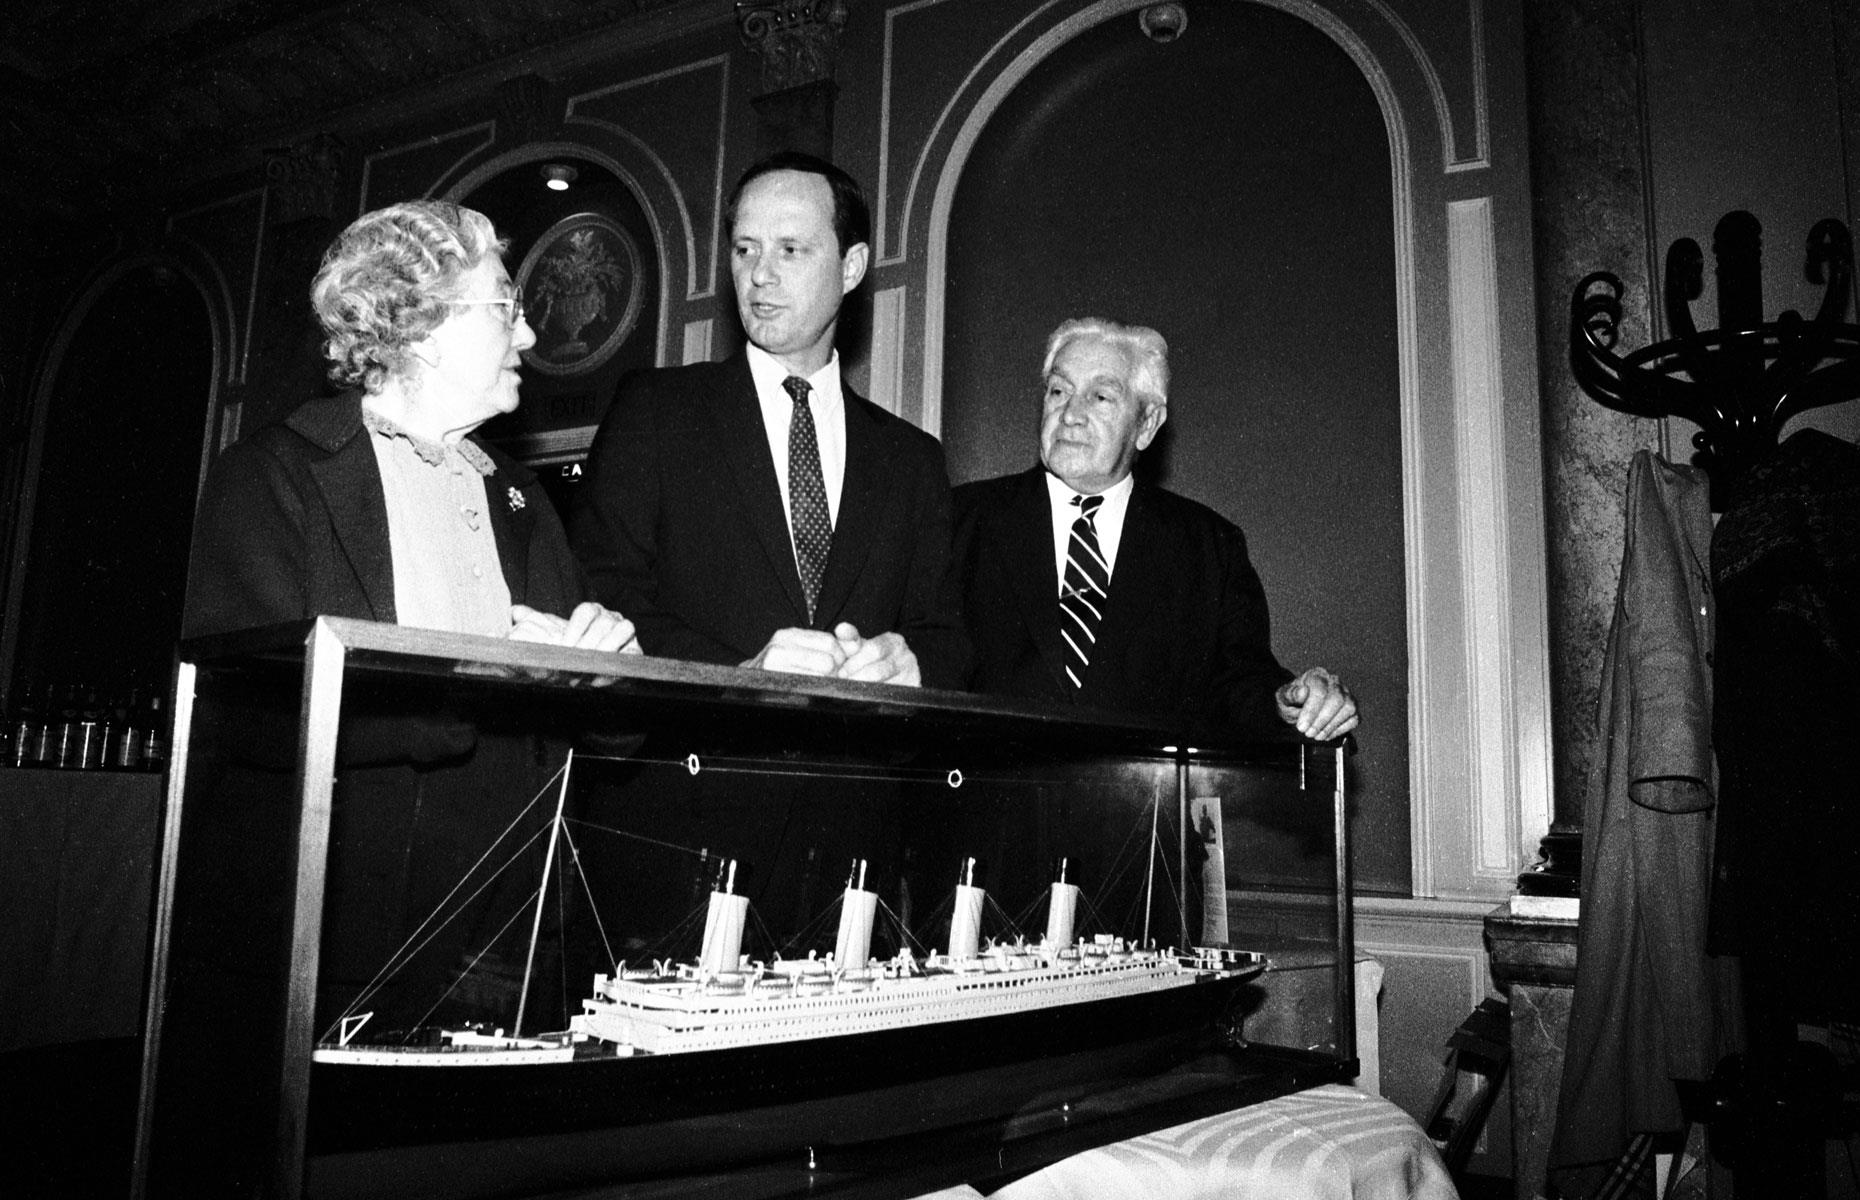 Slide 42 of 46: However, the Titanic's story didn't end with the sinking. The idea of finding the ship was first raised in 1914. But it wasn't until July 1986 that Robert Ballard (pictured center with survivors Eva Hart and Bertram Dean) discovered the wreckage of the ship. He and his team had been photographing US submarines on a secret Cold War mission, and were allowed to search for the Titanic as a side project after the main job was done.